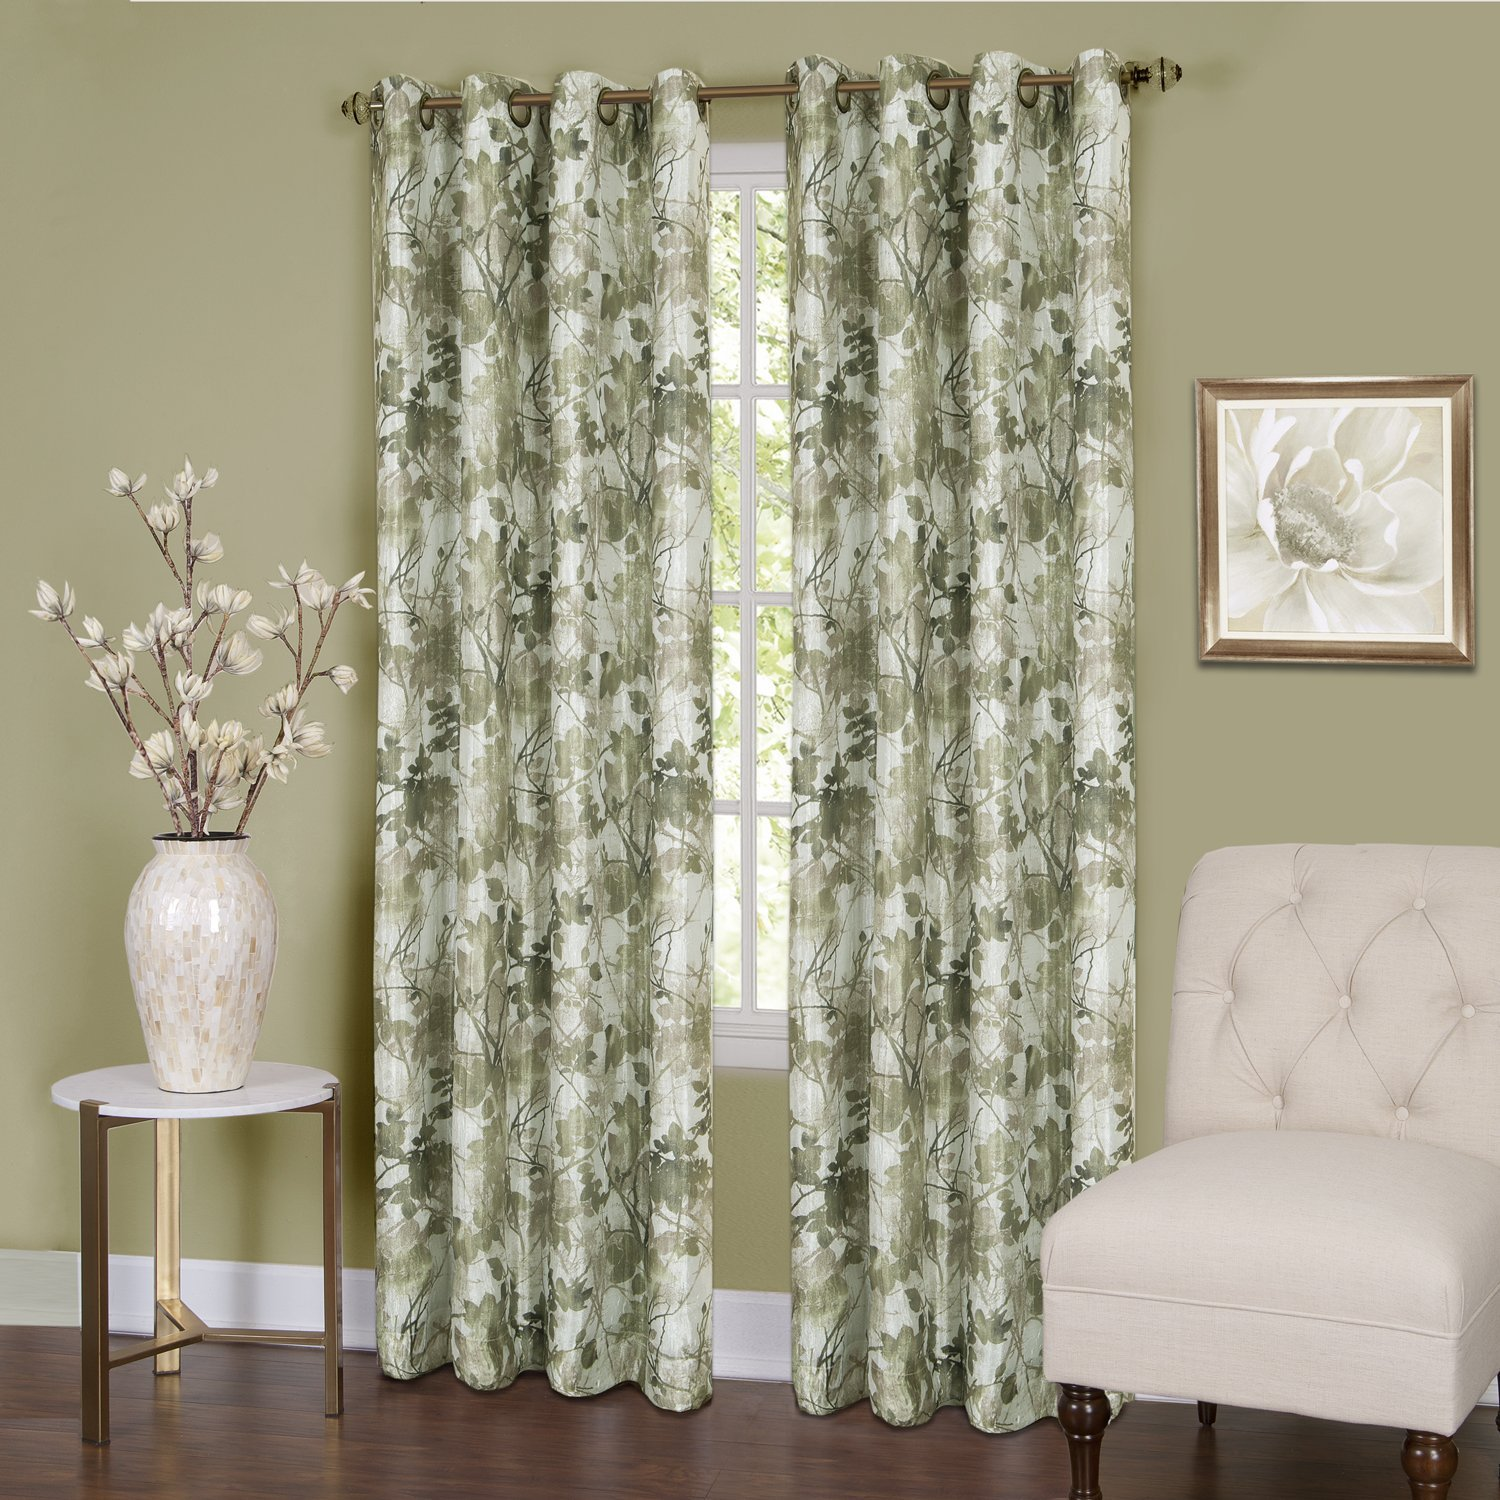 green window curtain panels on sale ease bedding with style. Black Bedroom Furniture Sets. Home Design Ideas